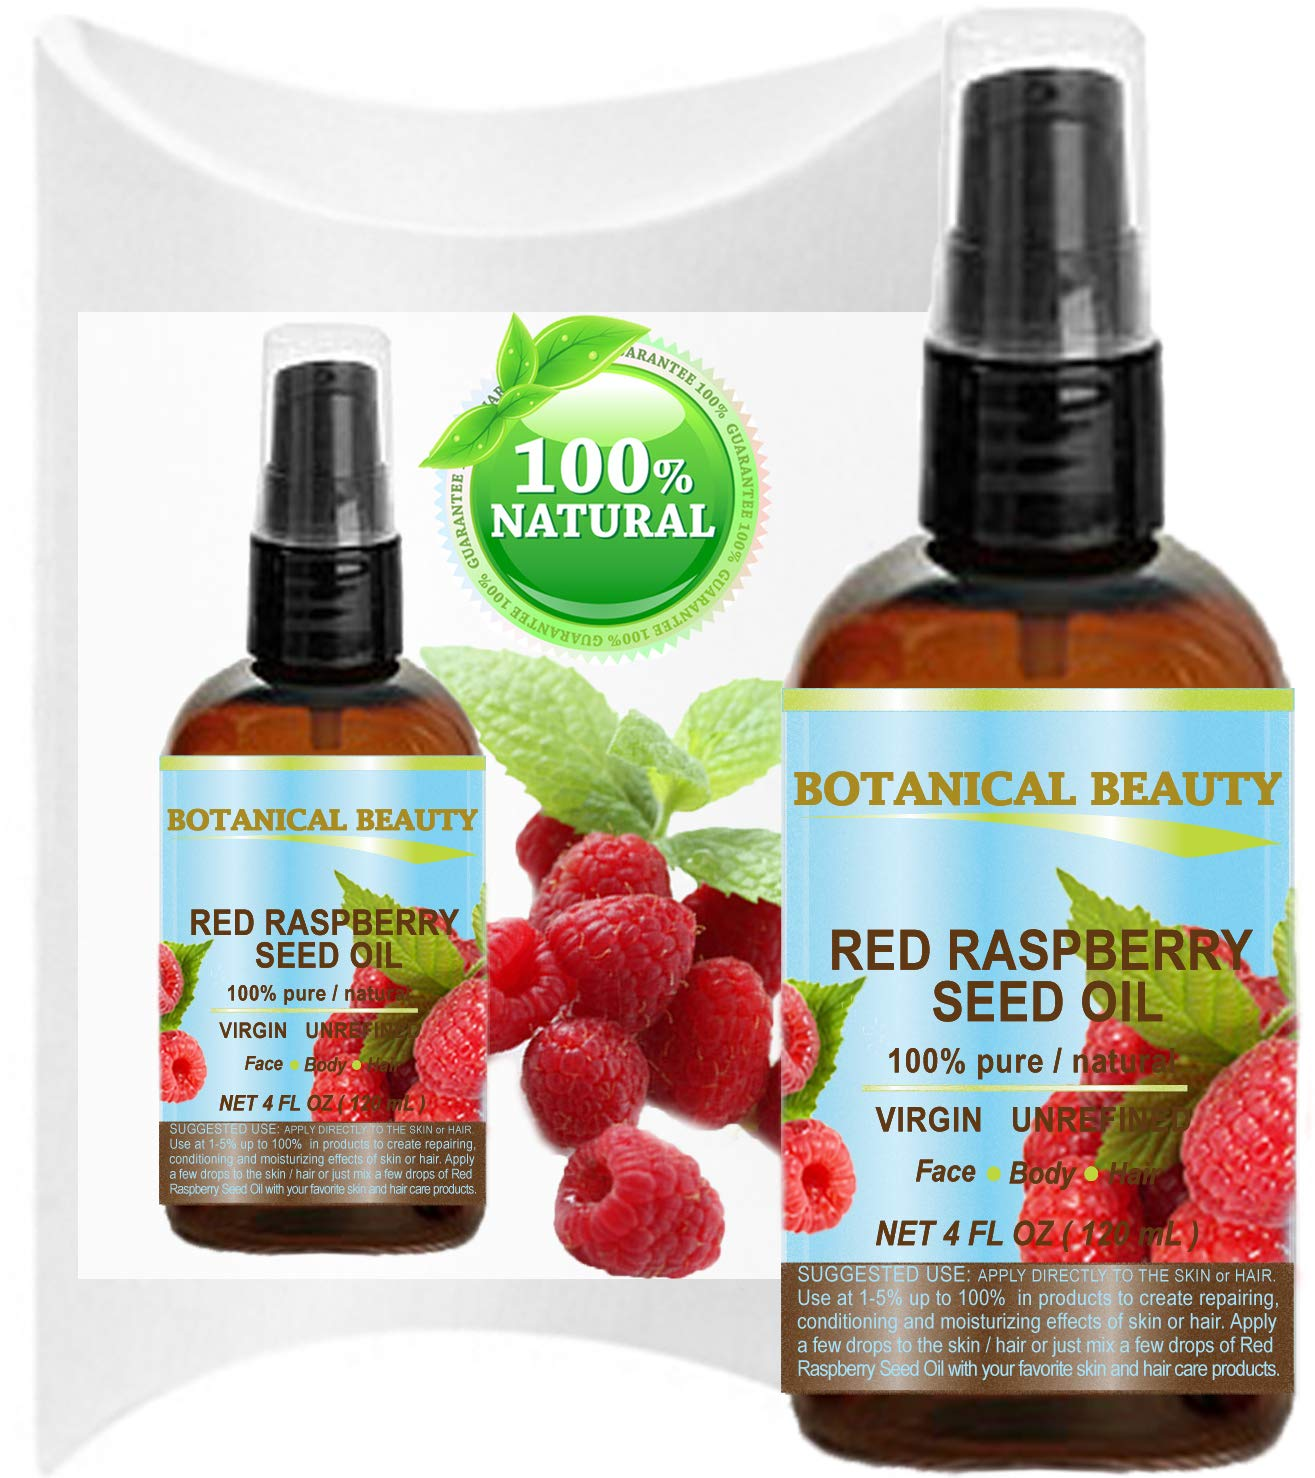 RED RASPBERRY SEED OIL 100% Pure / Natural / Virgin. Cold Pressed / Undiluted Carrier Oil. For Face, Hair and Body. 4 Fl.oz.- 120 ml. by Botanical Beauty